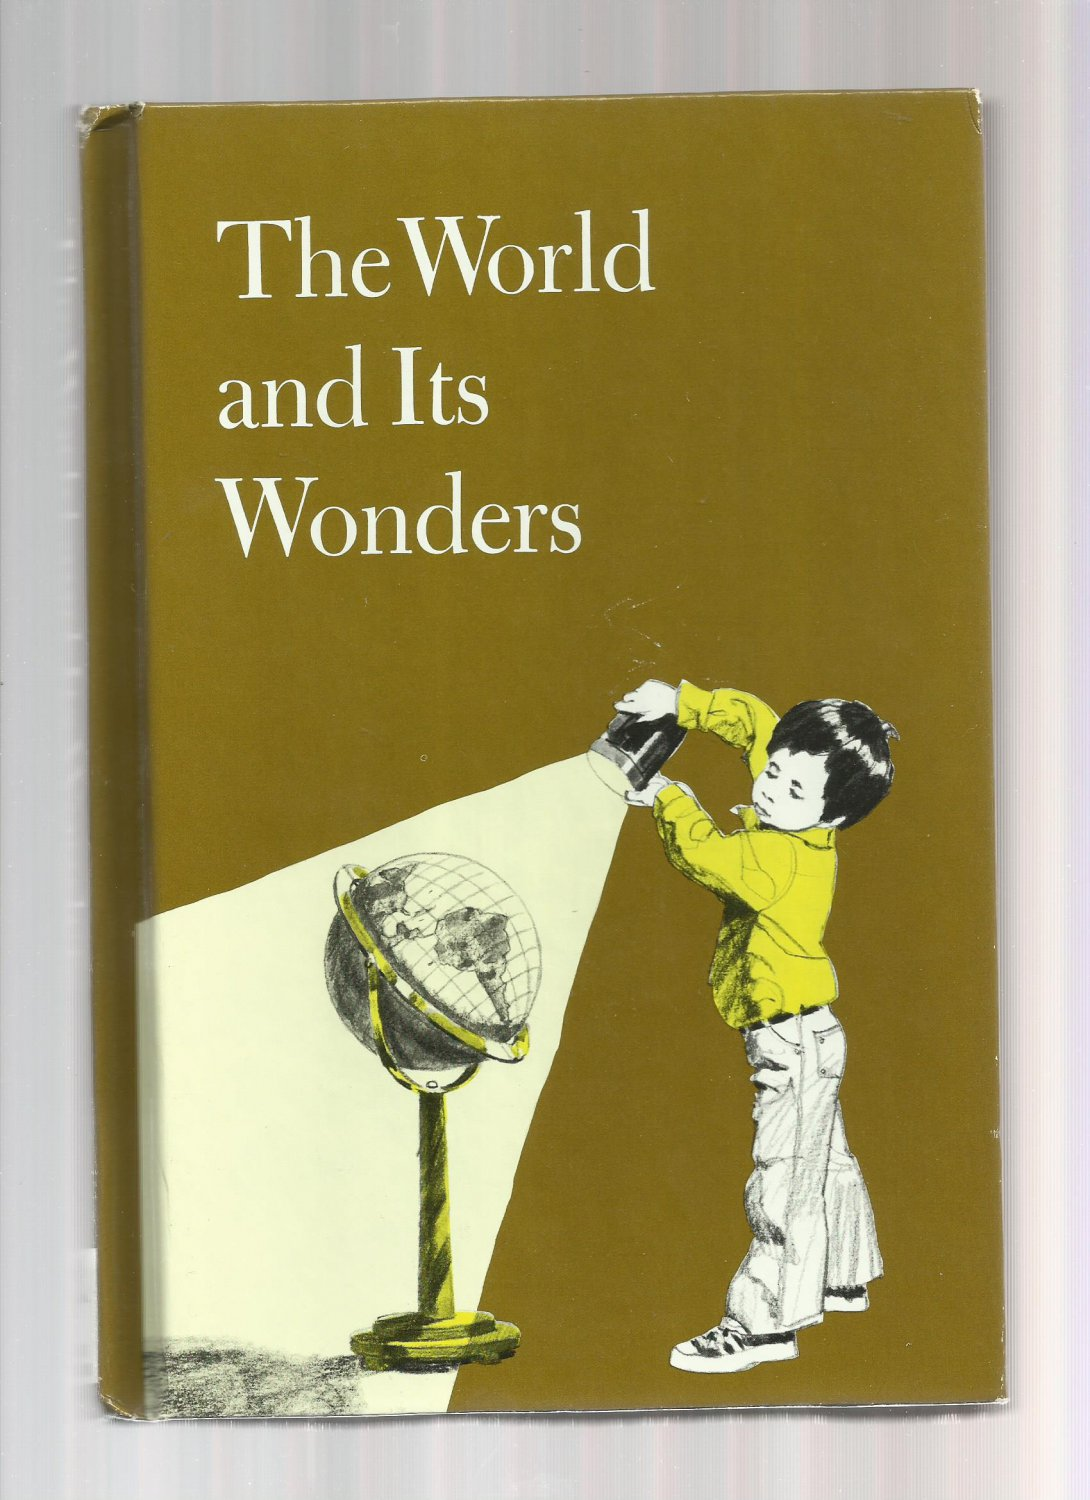 The World and Its Wonders, 1978 A Vintage Science Children's Book